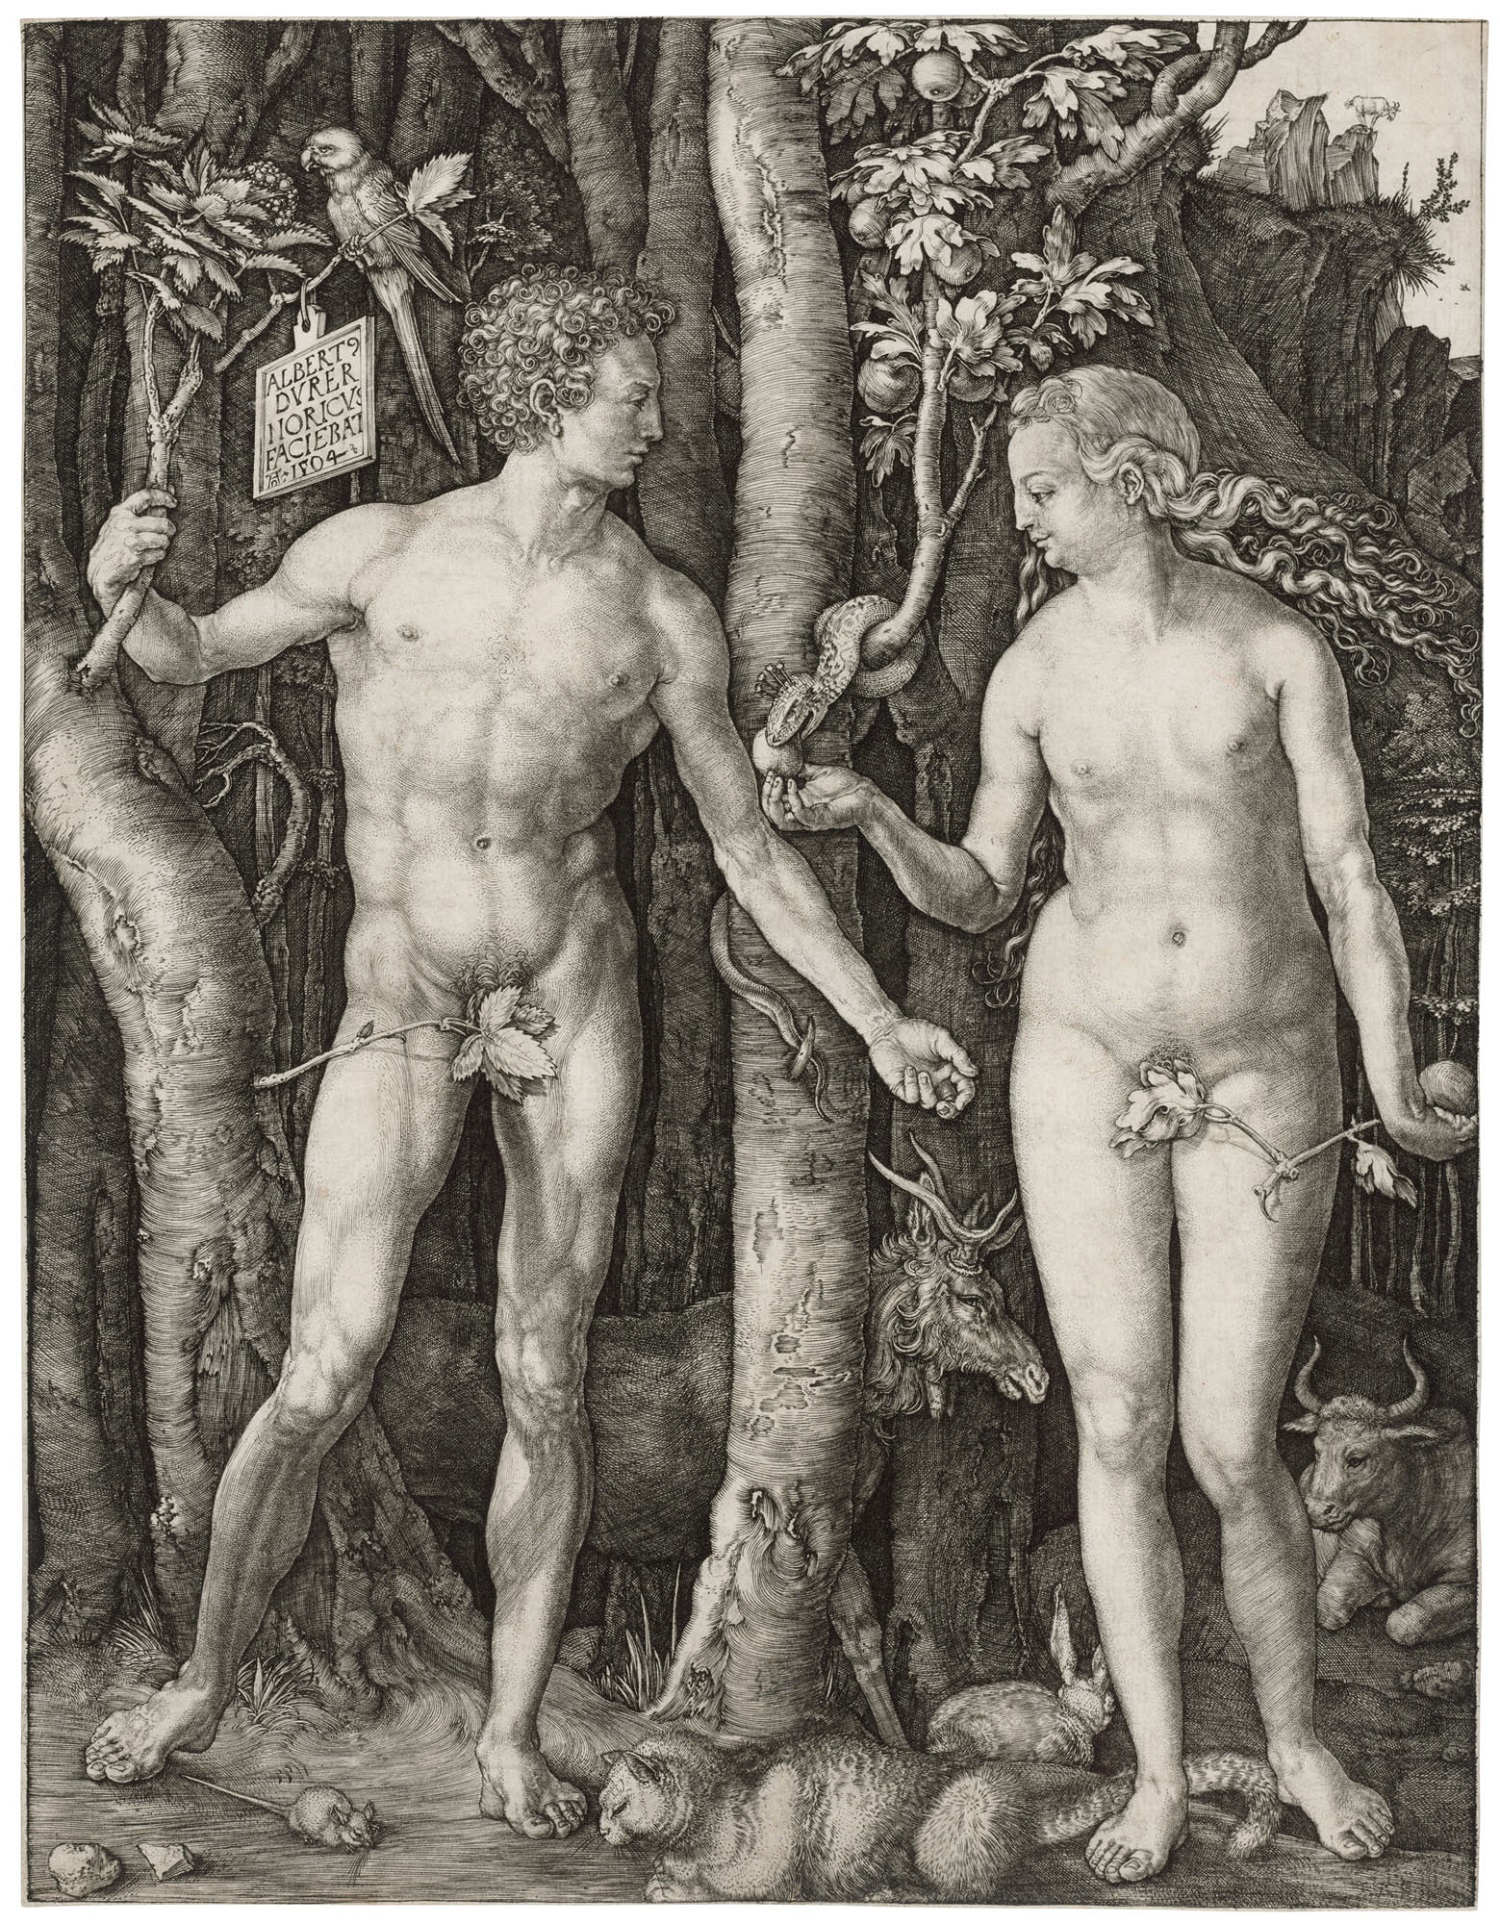 Christie's Old Master Prints Online-Only Auction